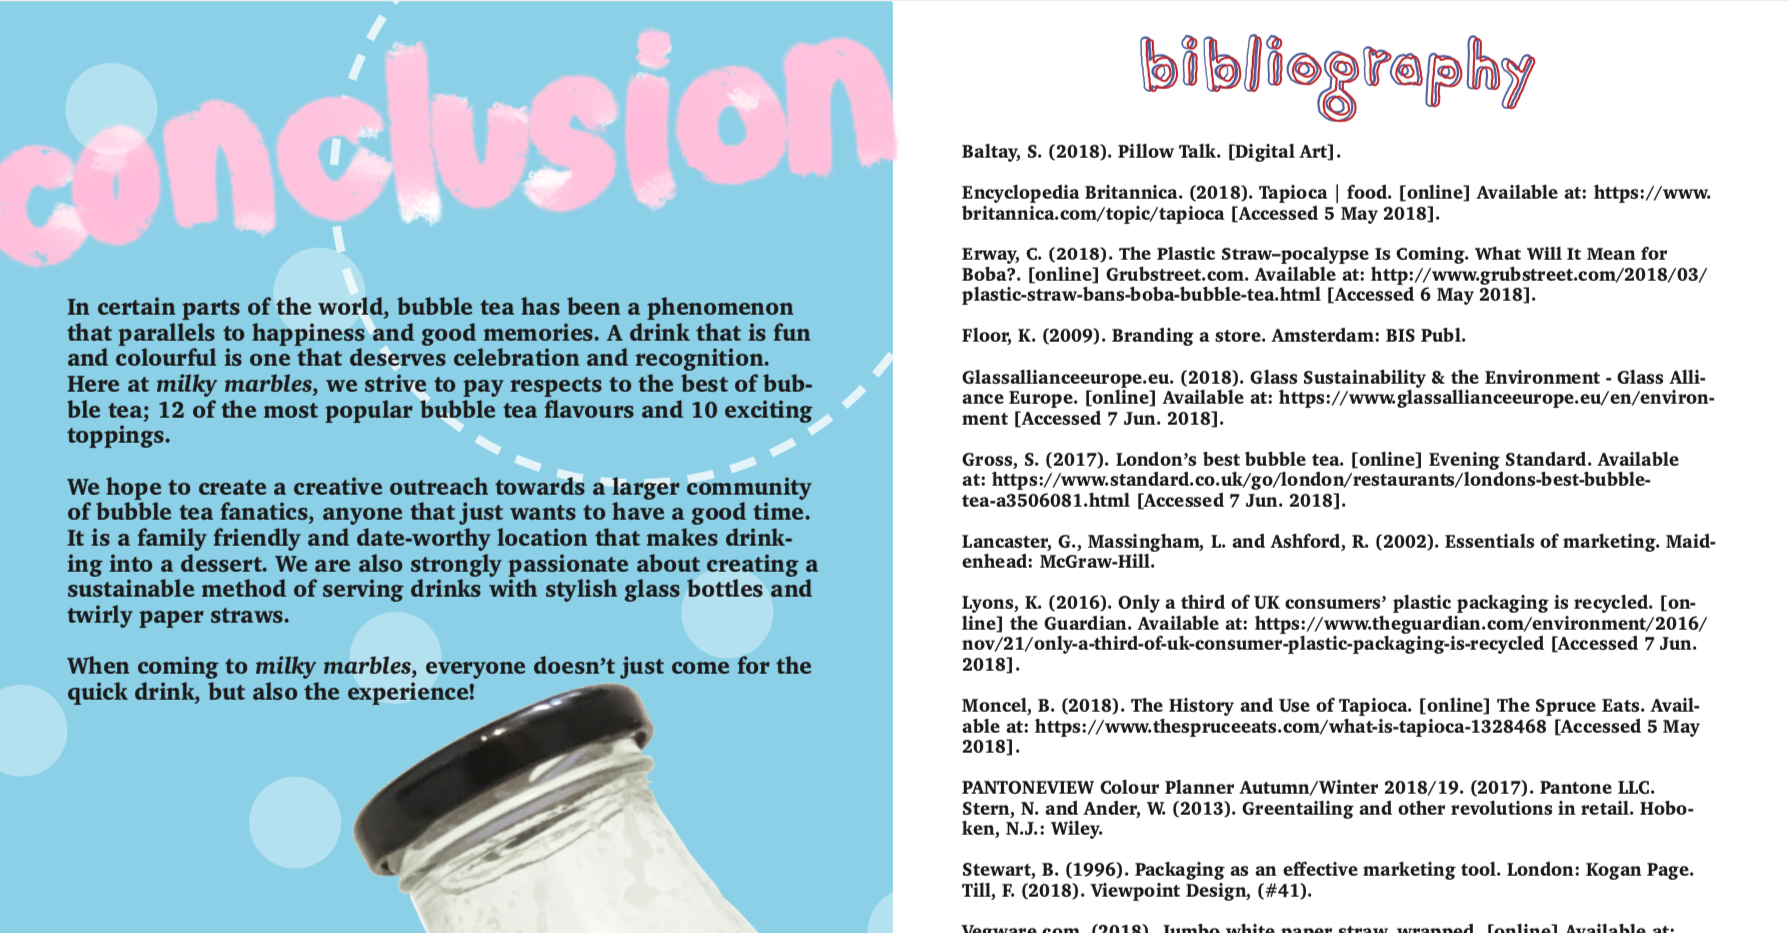 conclusion & bibliography